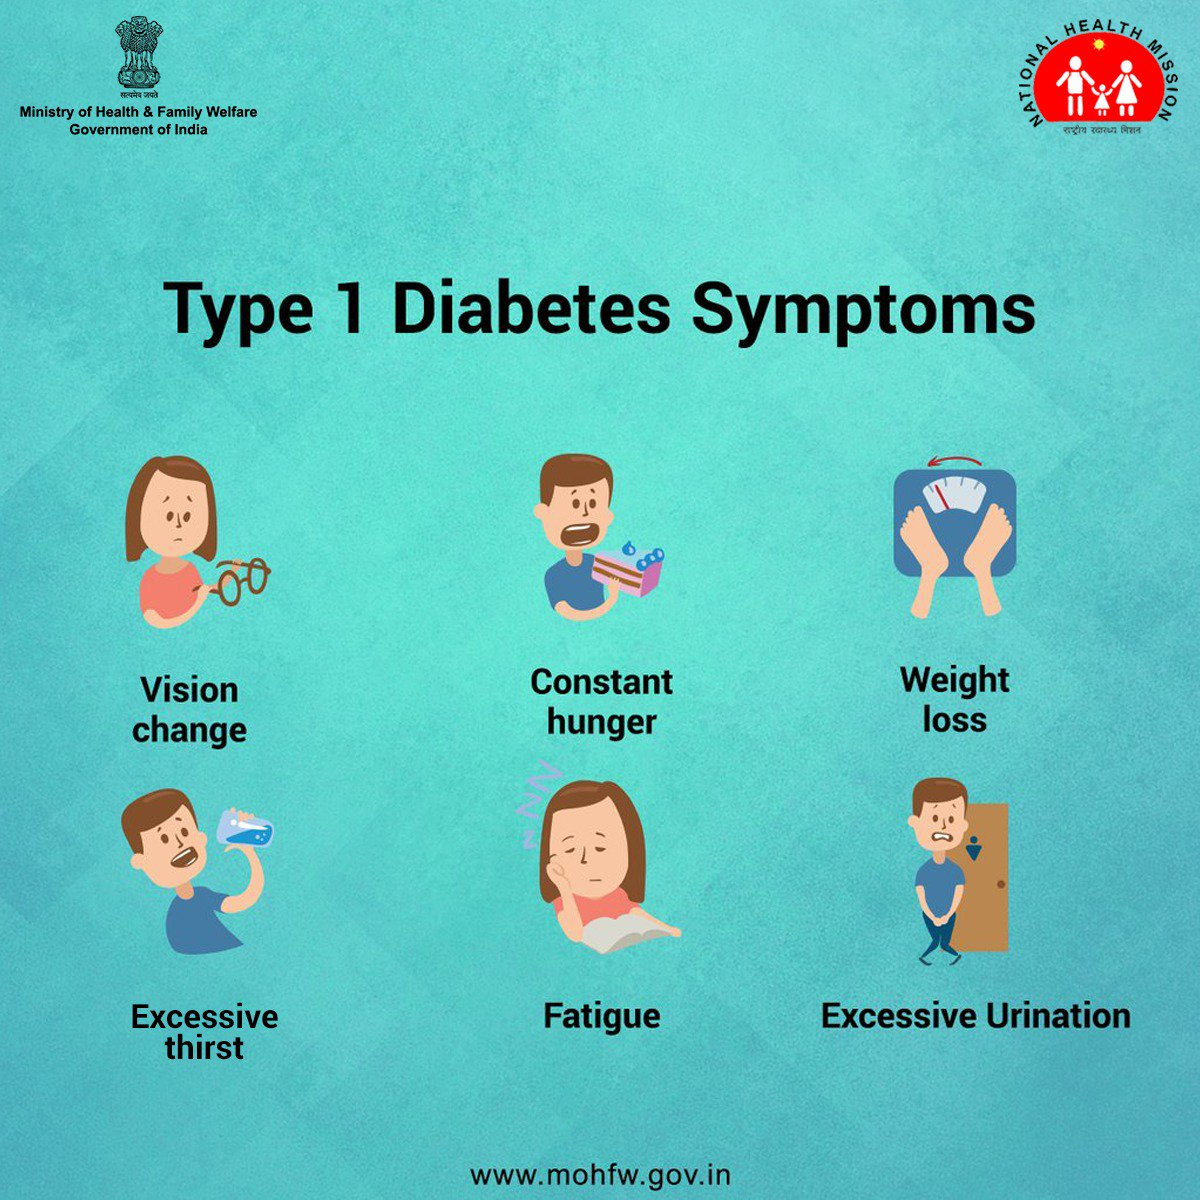 test Twitter Media - #Diabetes leads to many other fatal diseases. Act in time, if you experience any of these symptoms, seek help from your doctor immediately. https://t.co/78L7M1cq0y #BeatNCDs #SwasthaBharat https://t.co/tzRFhLCKBu